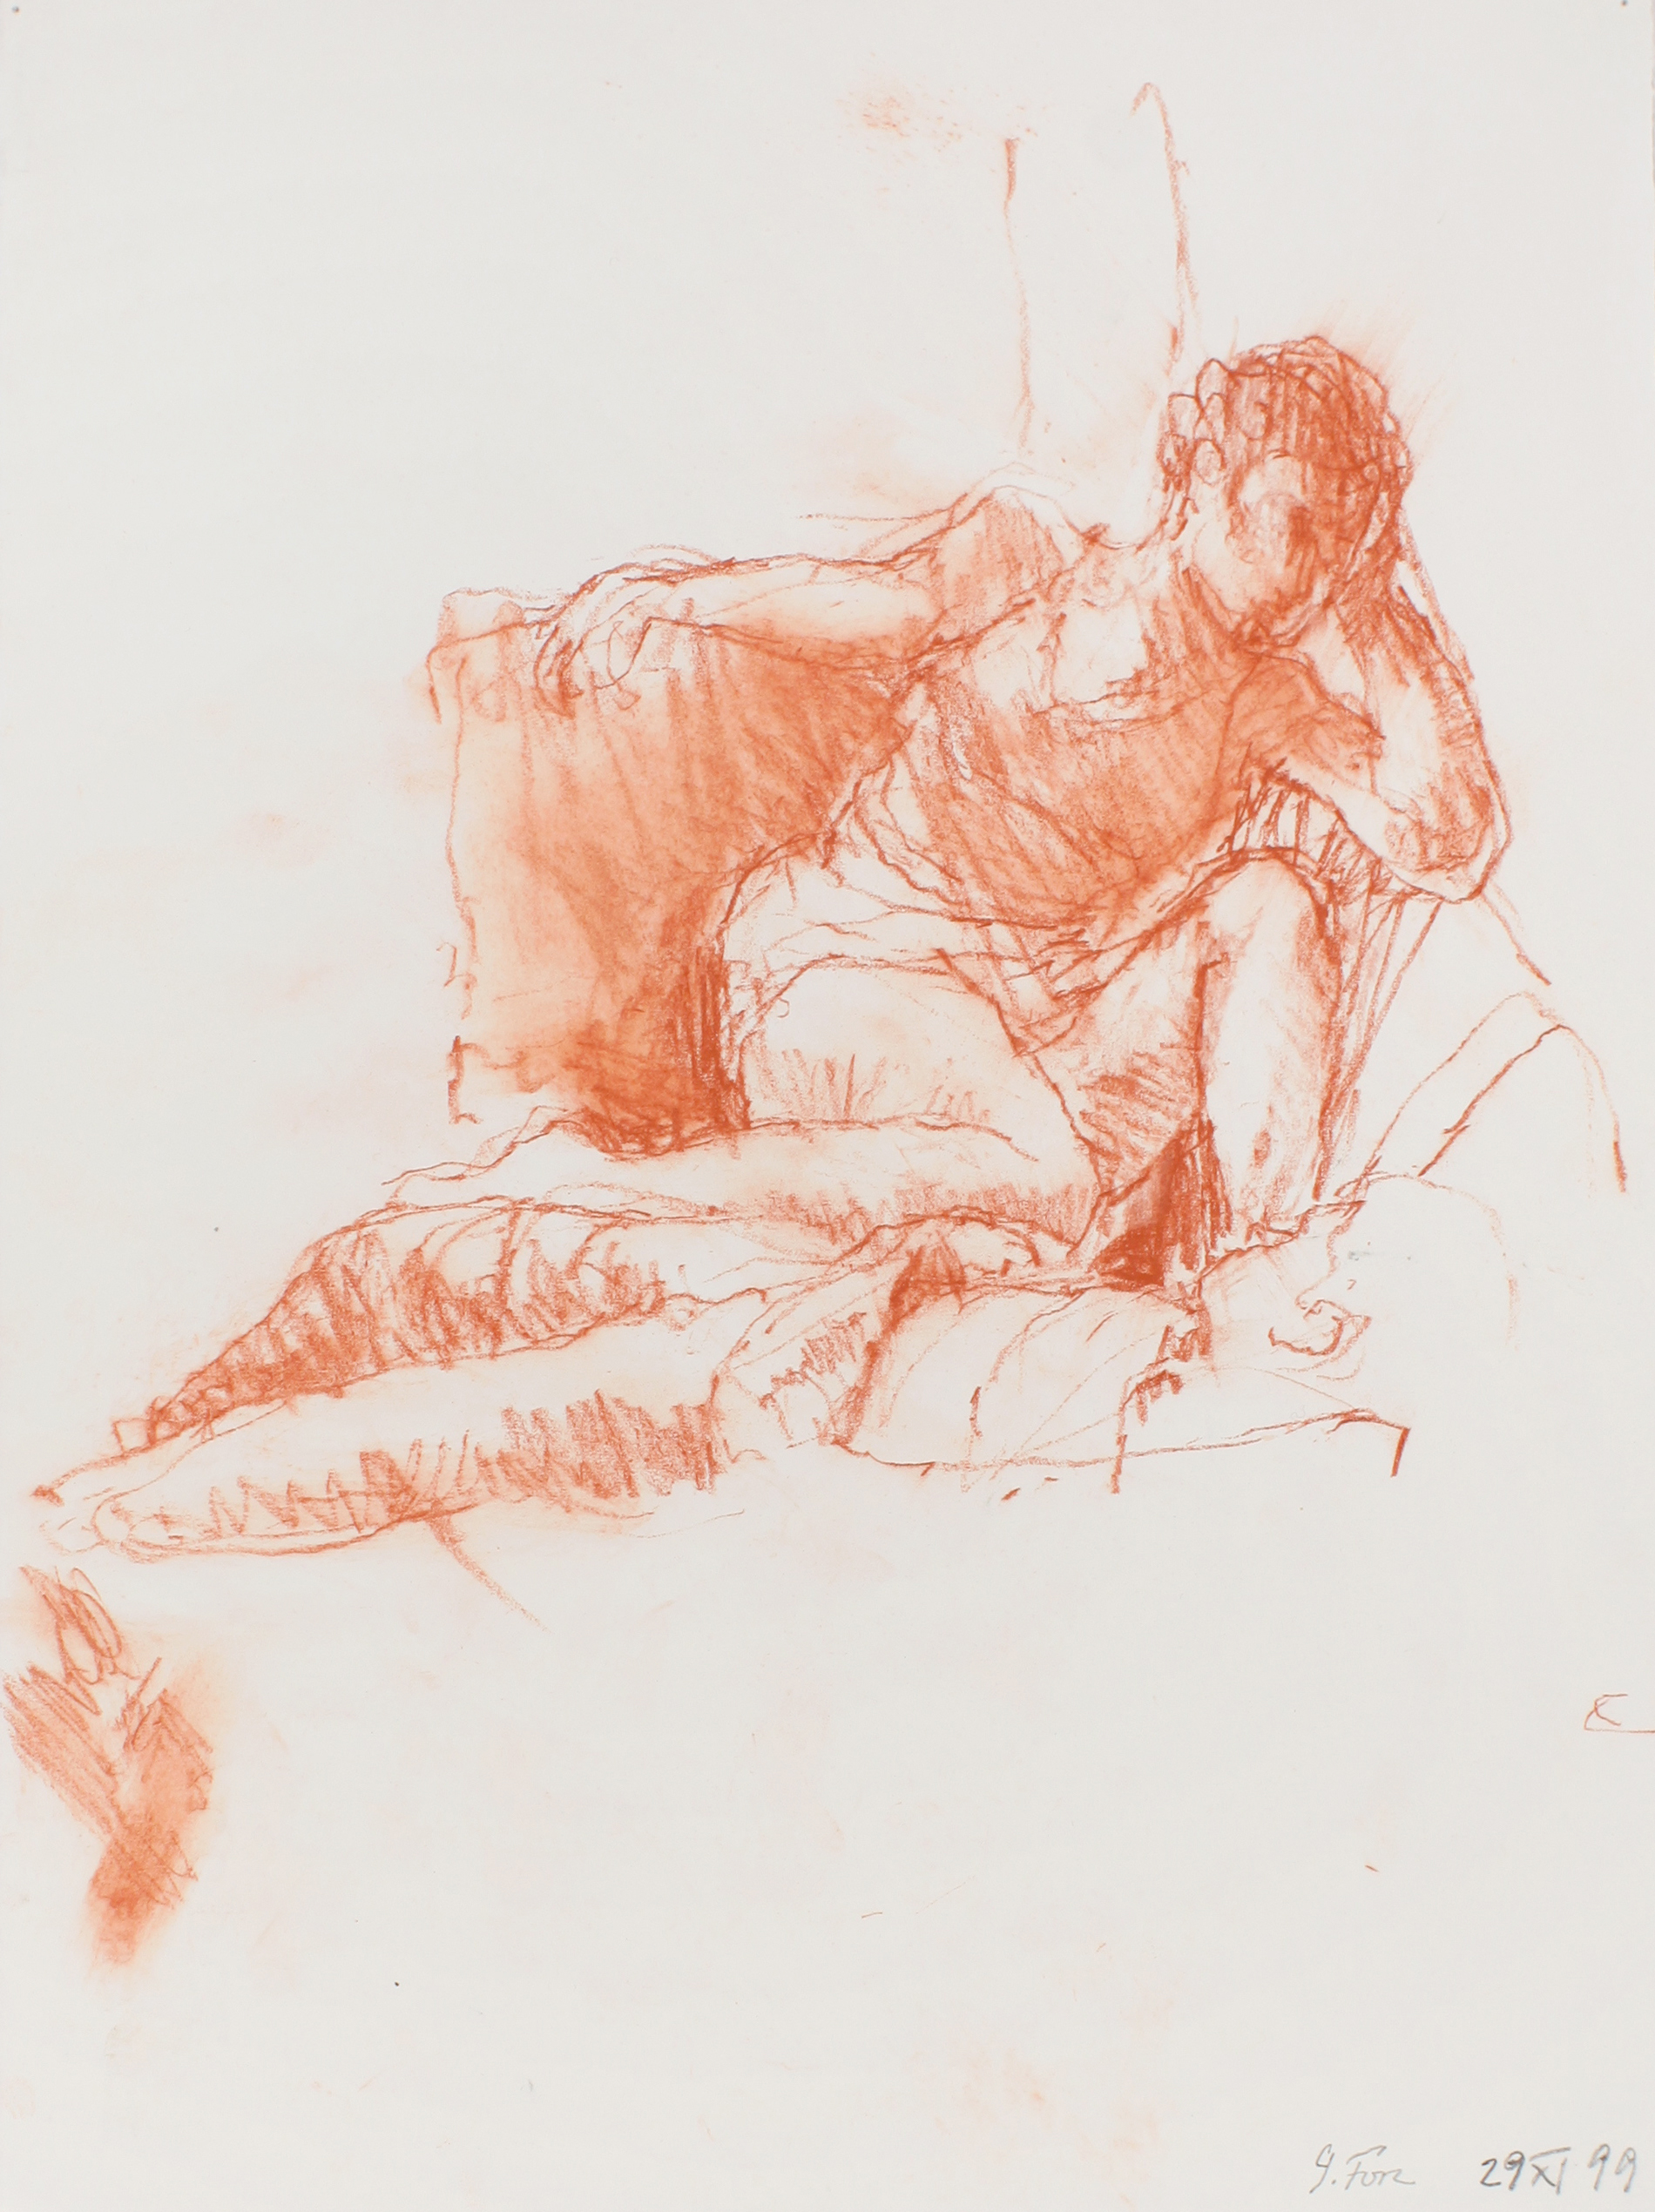 1999_Figure_Seated_in_Chair_Facing_Reclining_Figure_red_conte_on_paper_15x11in_WPF540.jpg